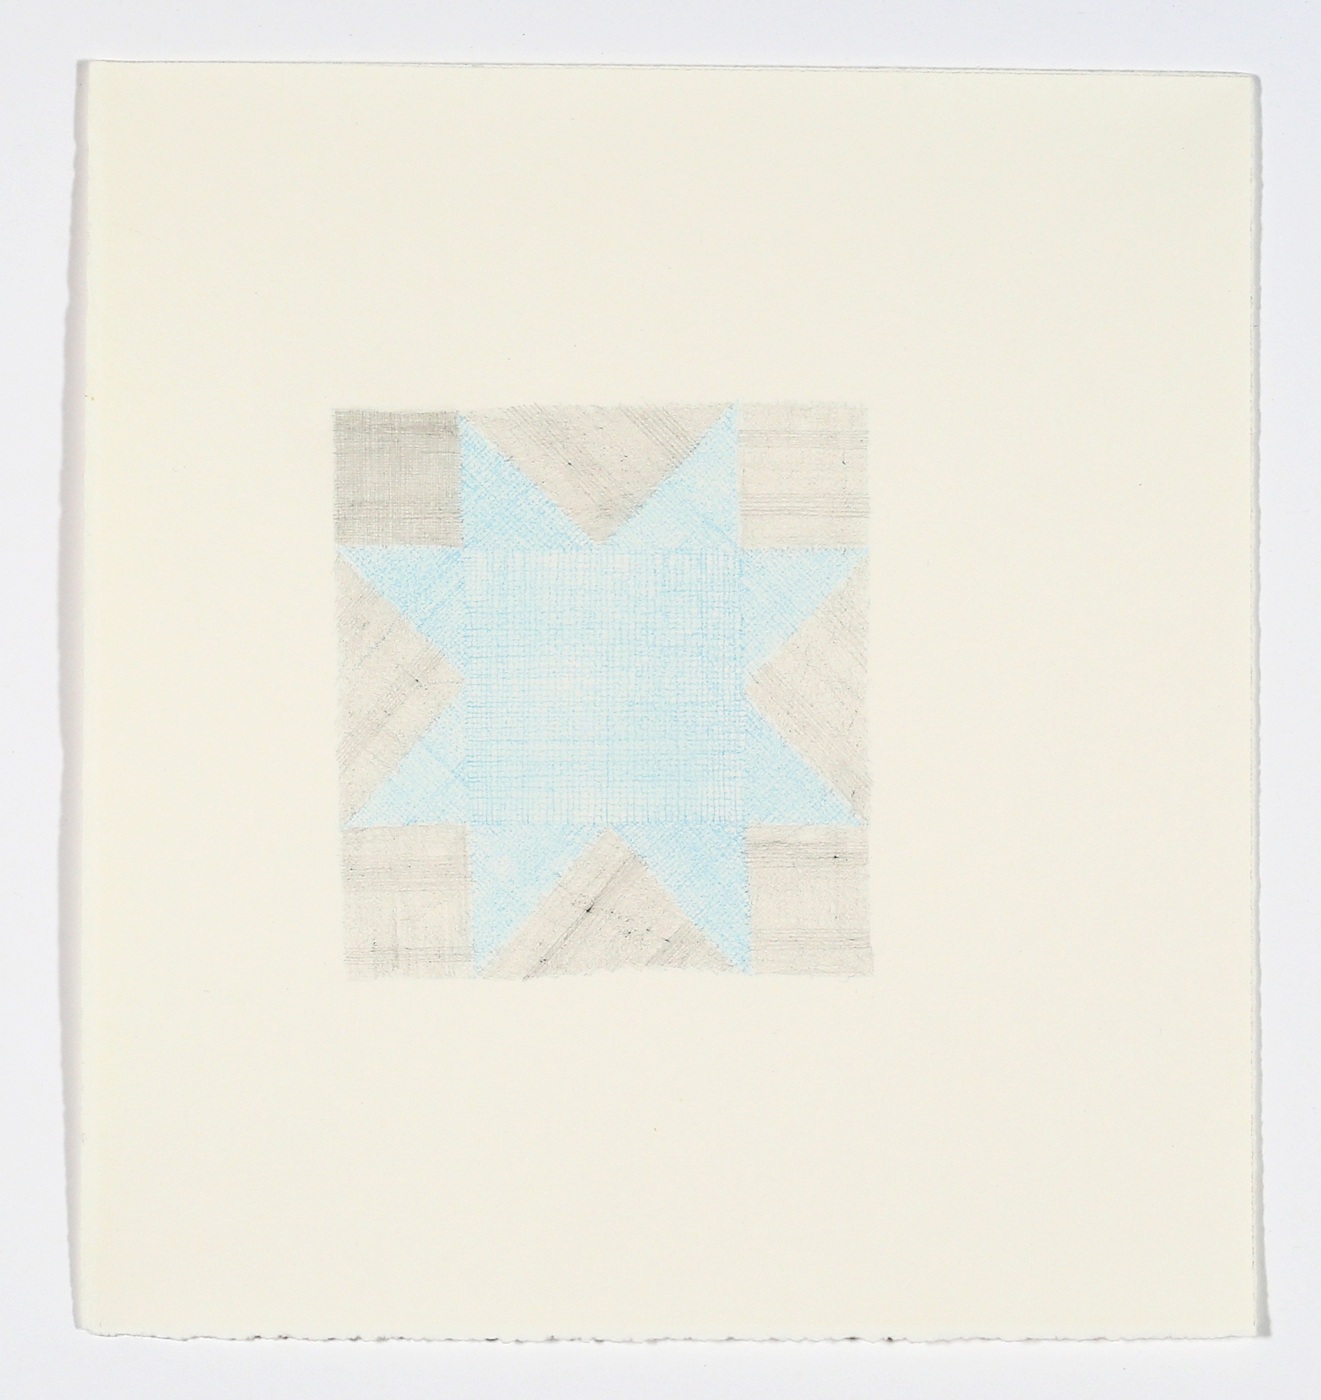 """Quilt Square No. 2. 2015. Pencil and Colored Pencil on Paper. 14"""" x 13"""""""